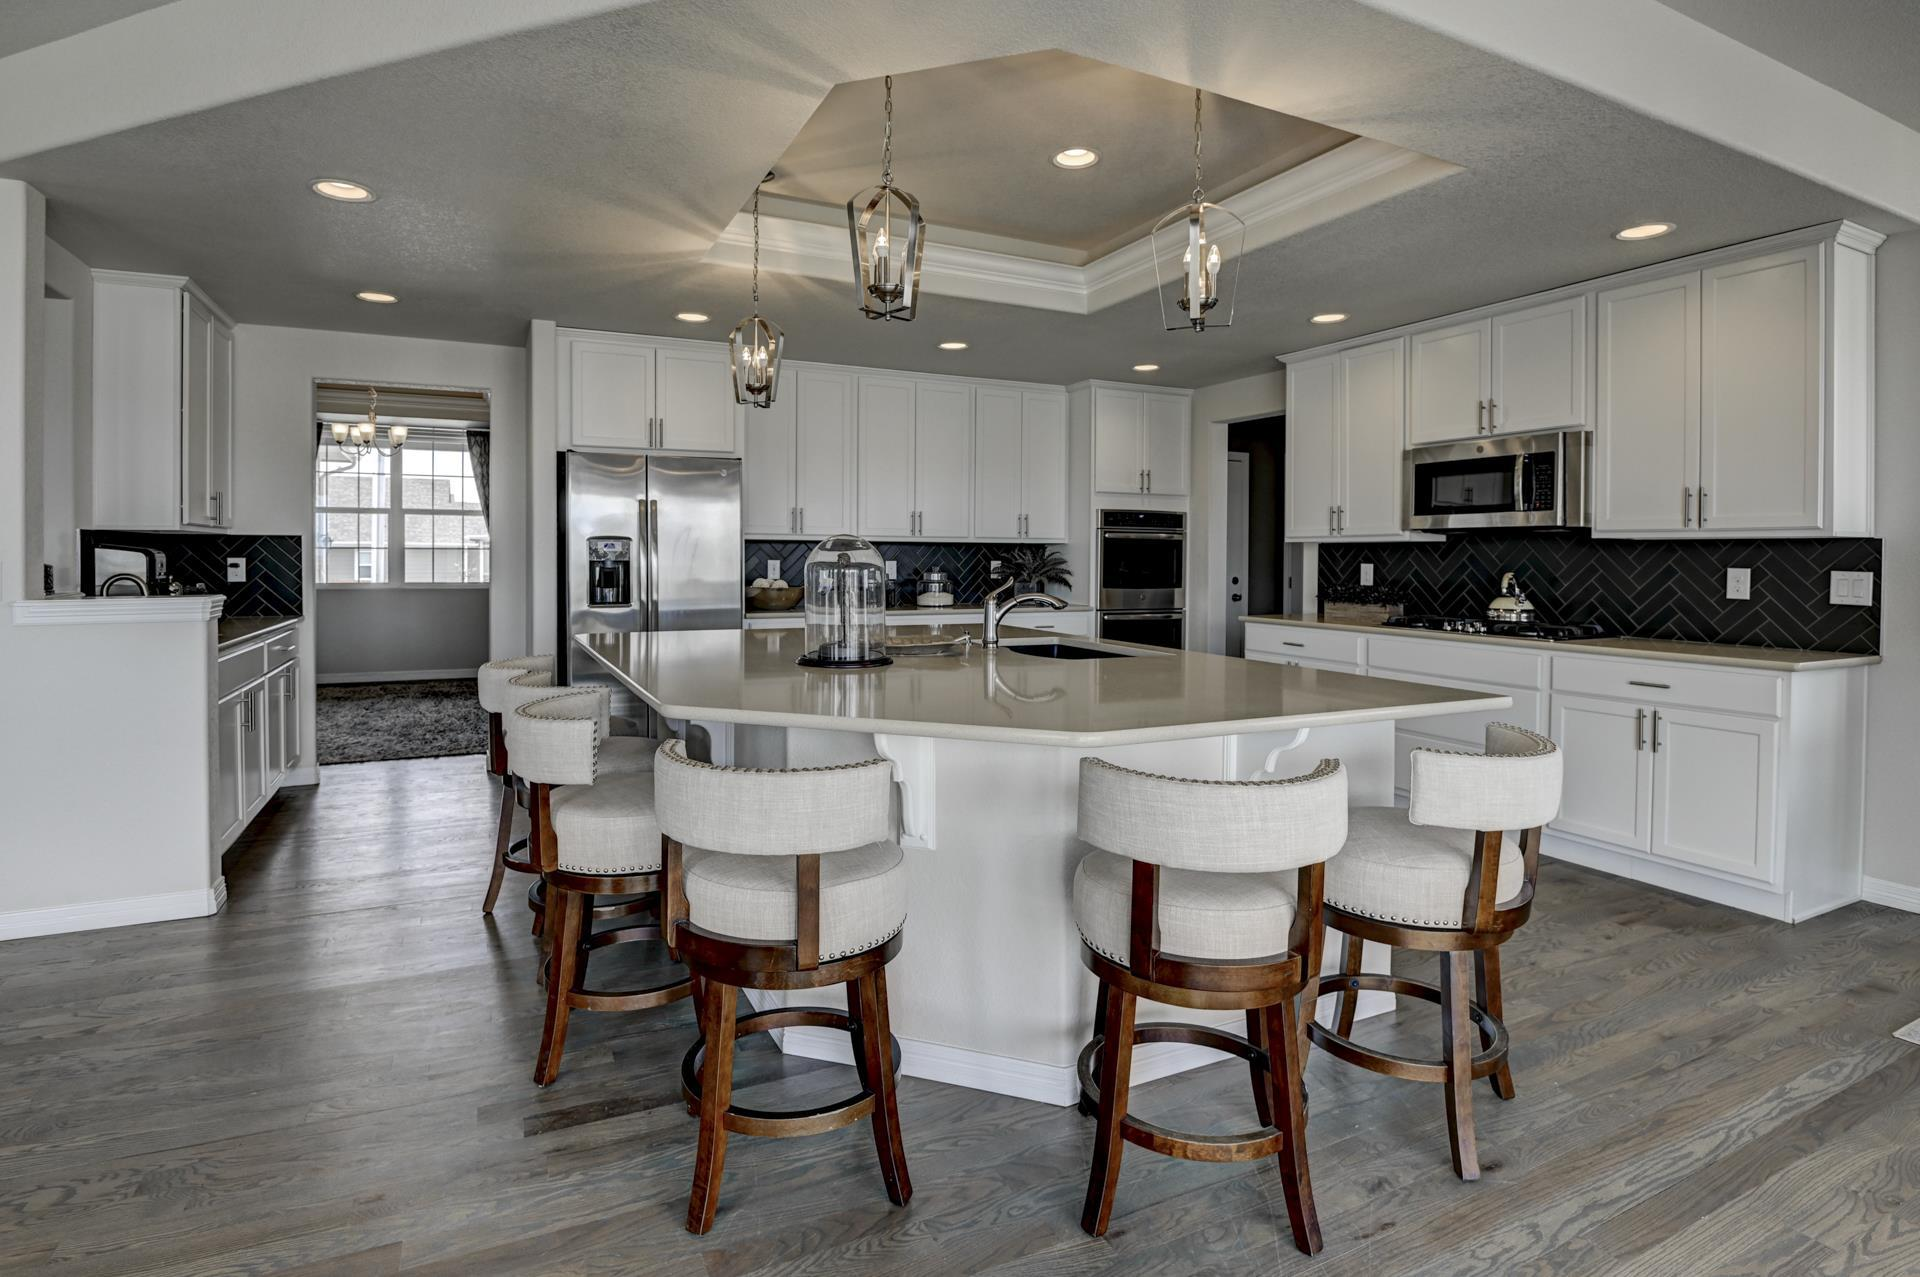 Kitchen featured in the Sunlight Peak (Finished Basement) By Reunion Homes in Colorado Springs, CO